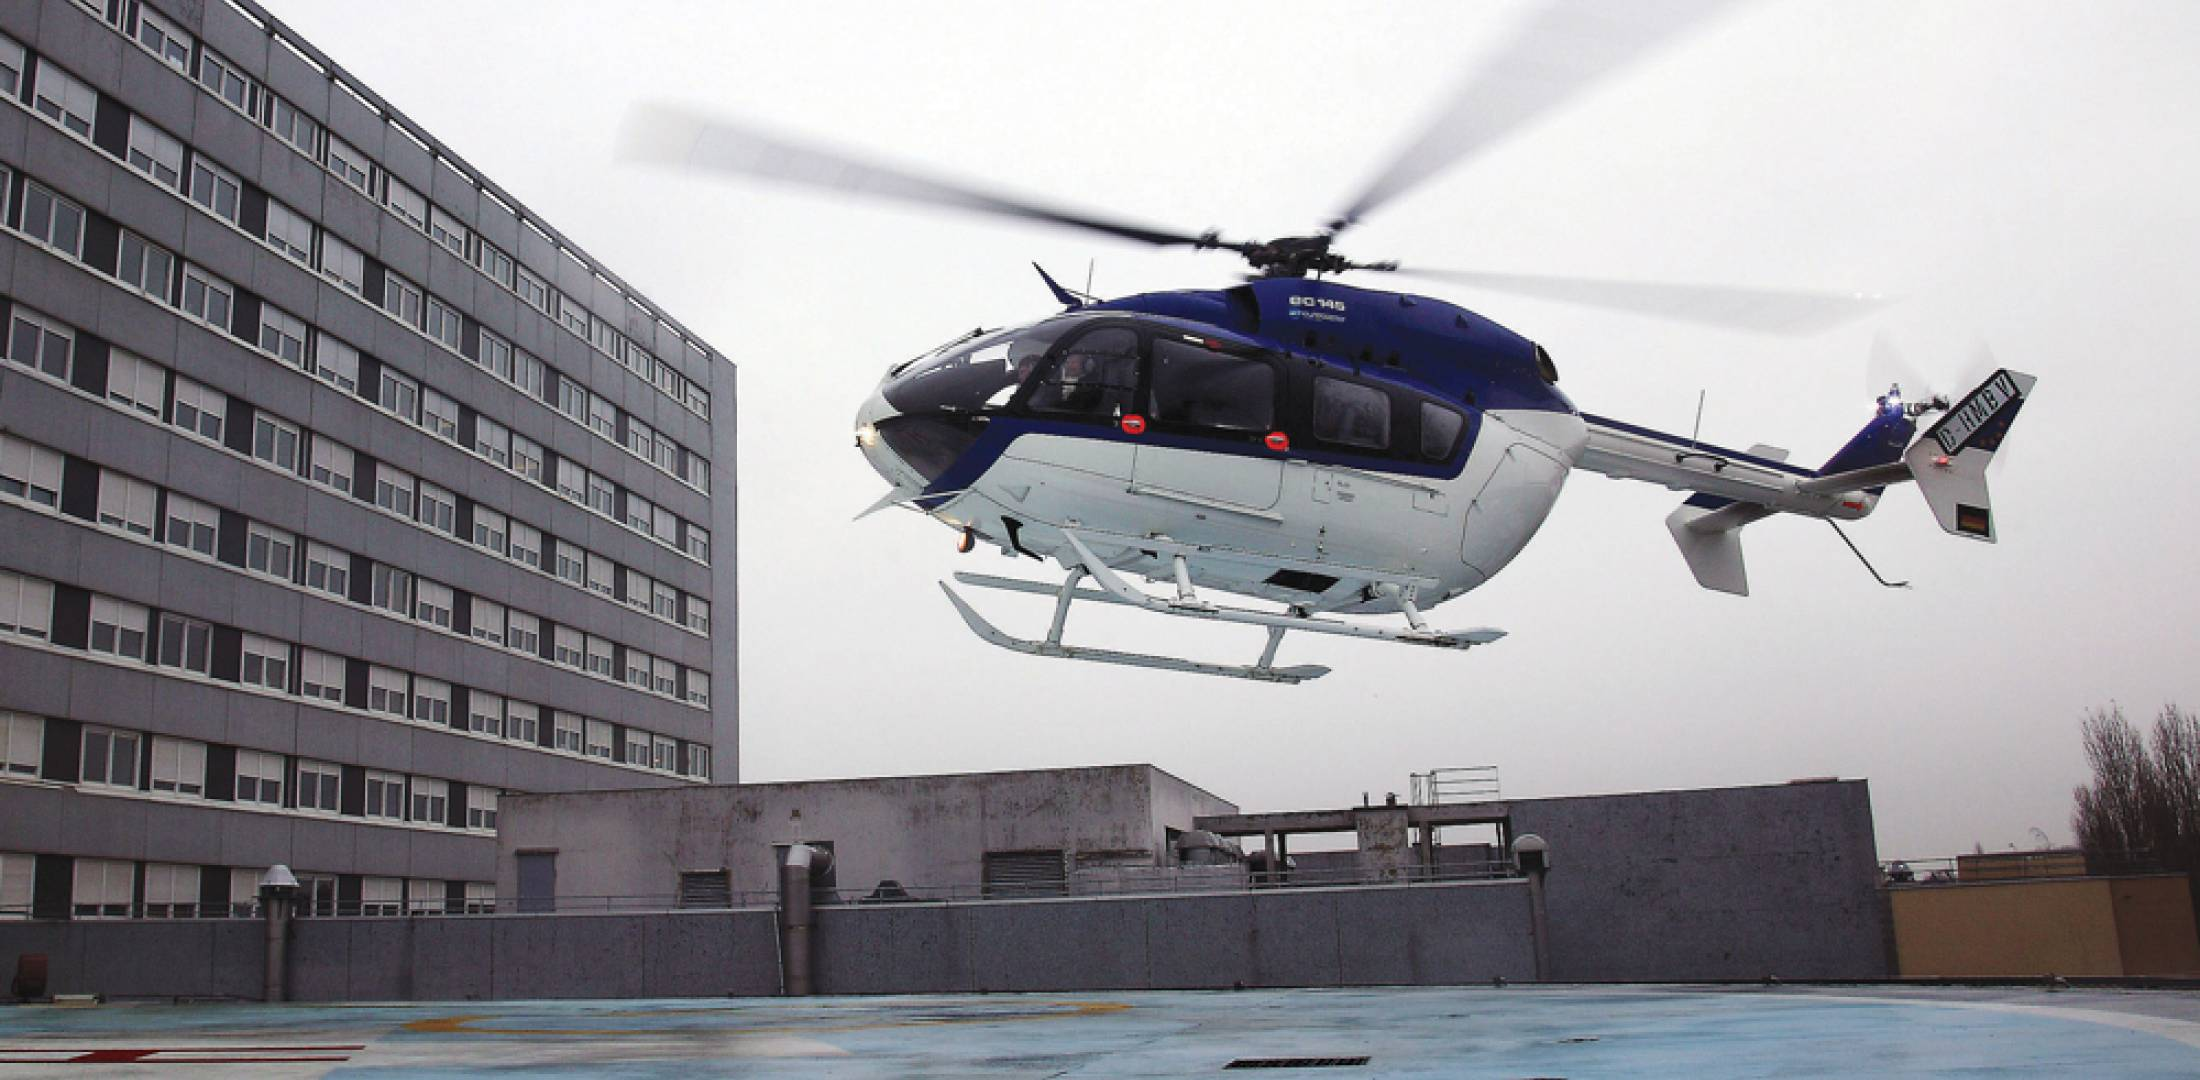 European helicopter EMS operators that add a second flight crewmember would need a heavier helicopter to carry the same payload, and there is no plan for the Ministry of Health to make up for the subsequent higher costs.